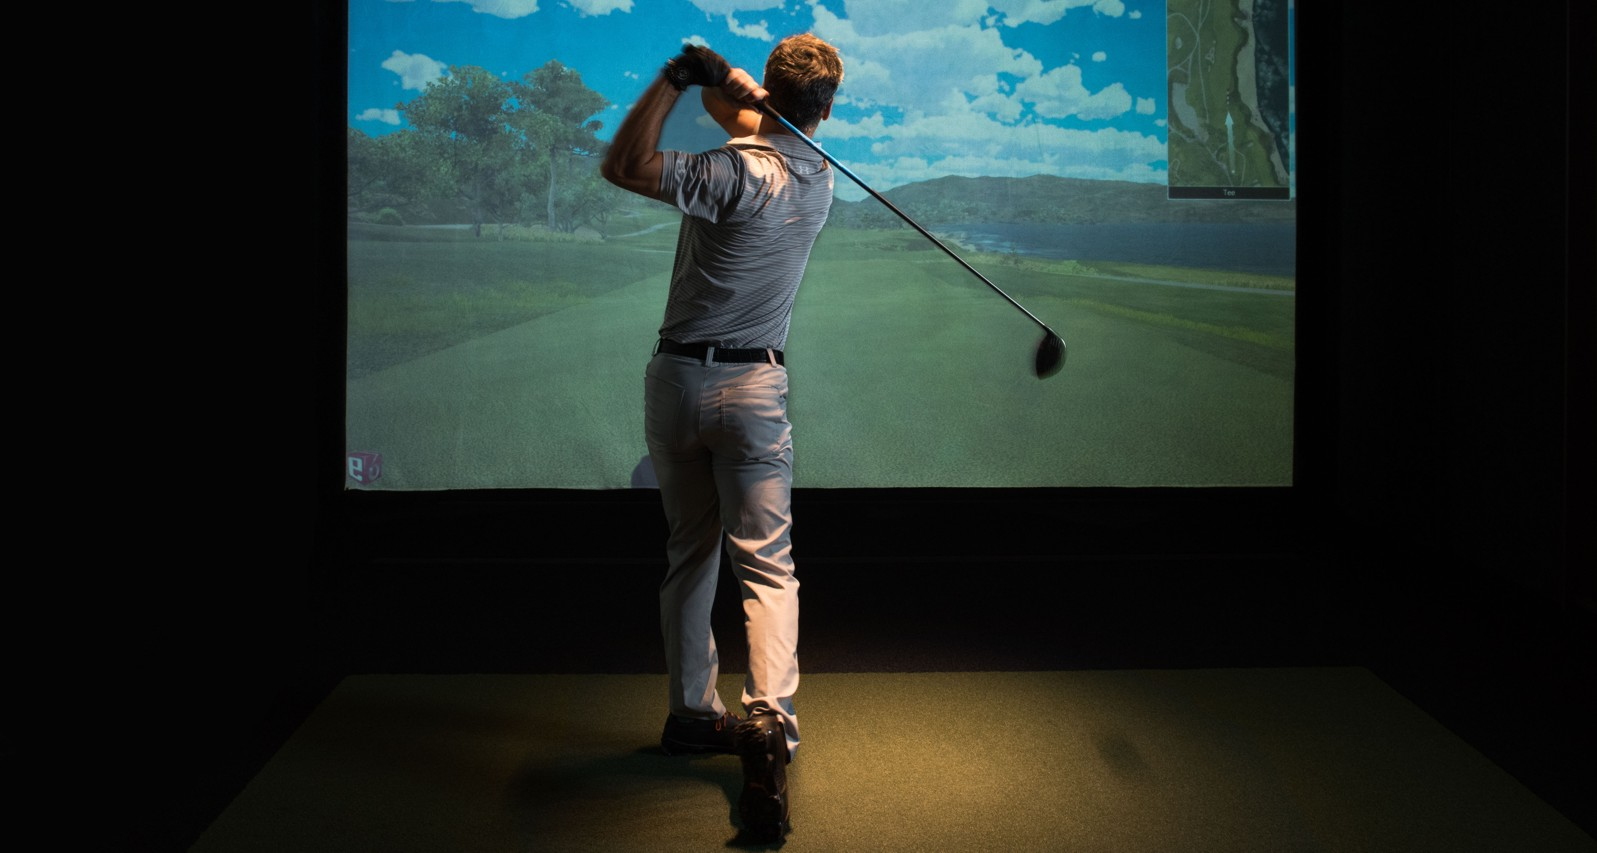 Ein Golf Spieler vor dem Golf Simulator beim Follow Through